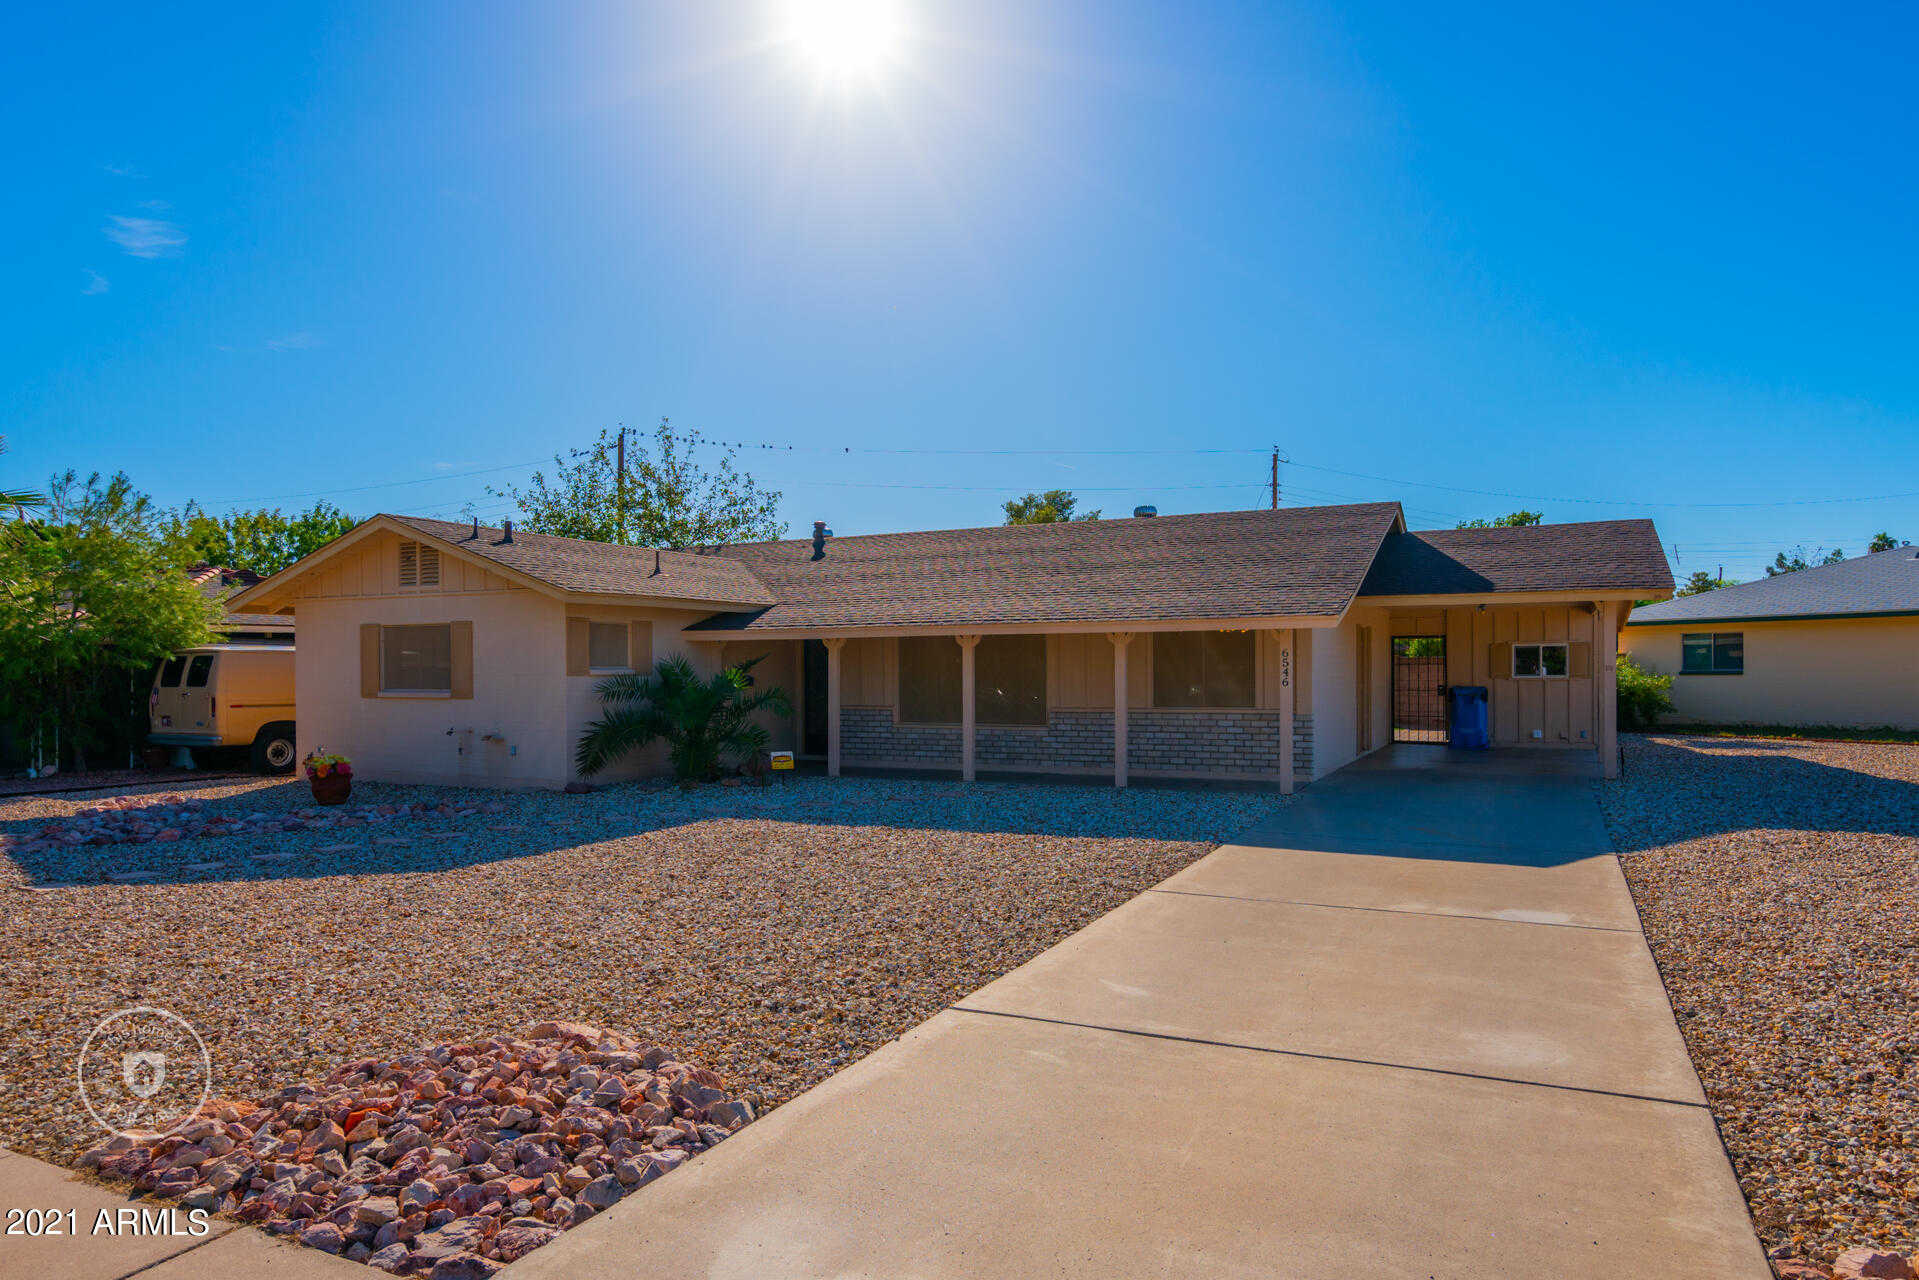 $446,000 - 3Br/2Ba - Home for Sale in Maryland Gardens 1, Phoenix